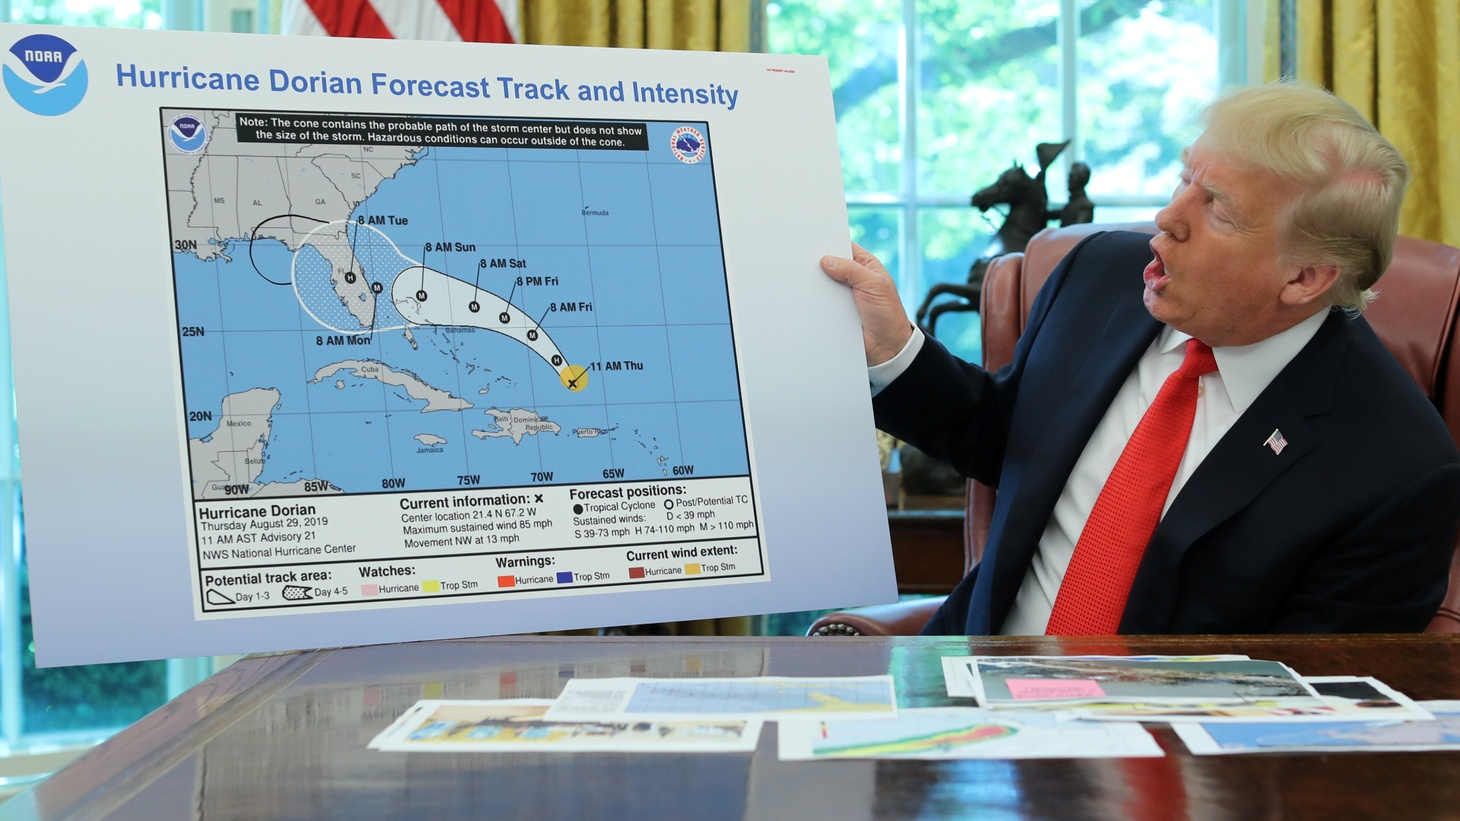 U.S. President Donald Trump holds a chart showing the original projected track of Hurricane Dorian that appears to have been extended with a black line to include parts of the Florida panhandle and of the state of Alabama during a status report meeting on the hurricane in the Oval Office of the White House in Washington, U.S., September 4, 2019.